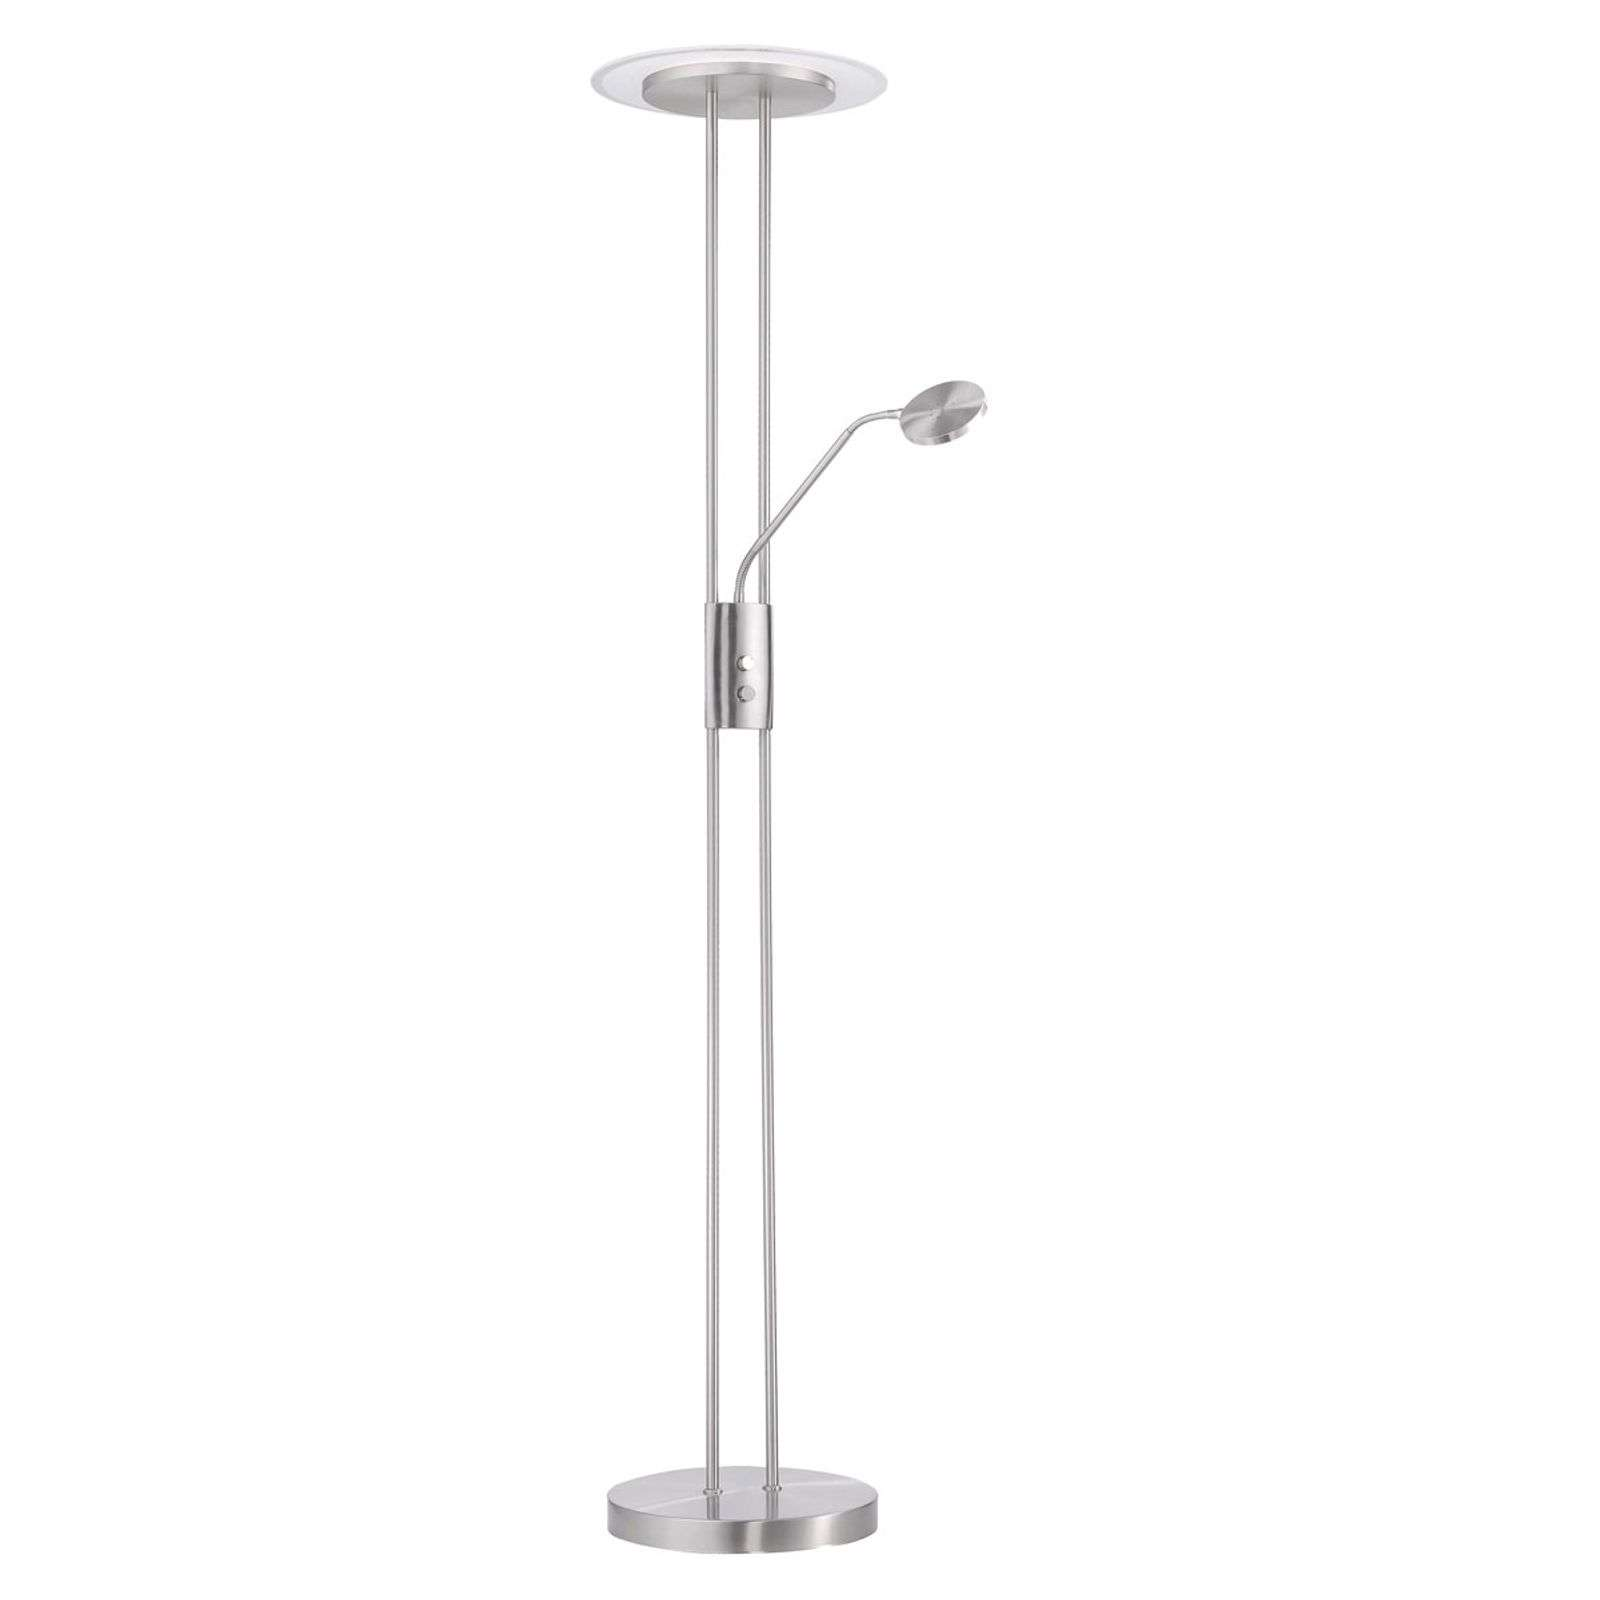 Lampadaire à éclairage indirect LED Fluente